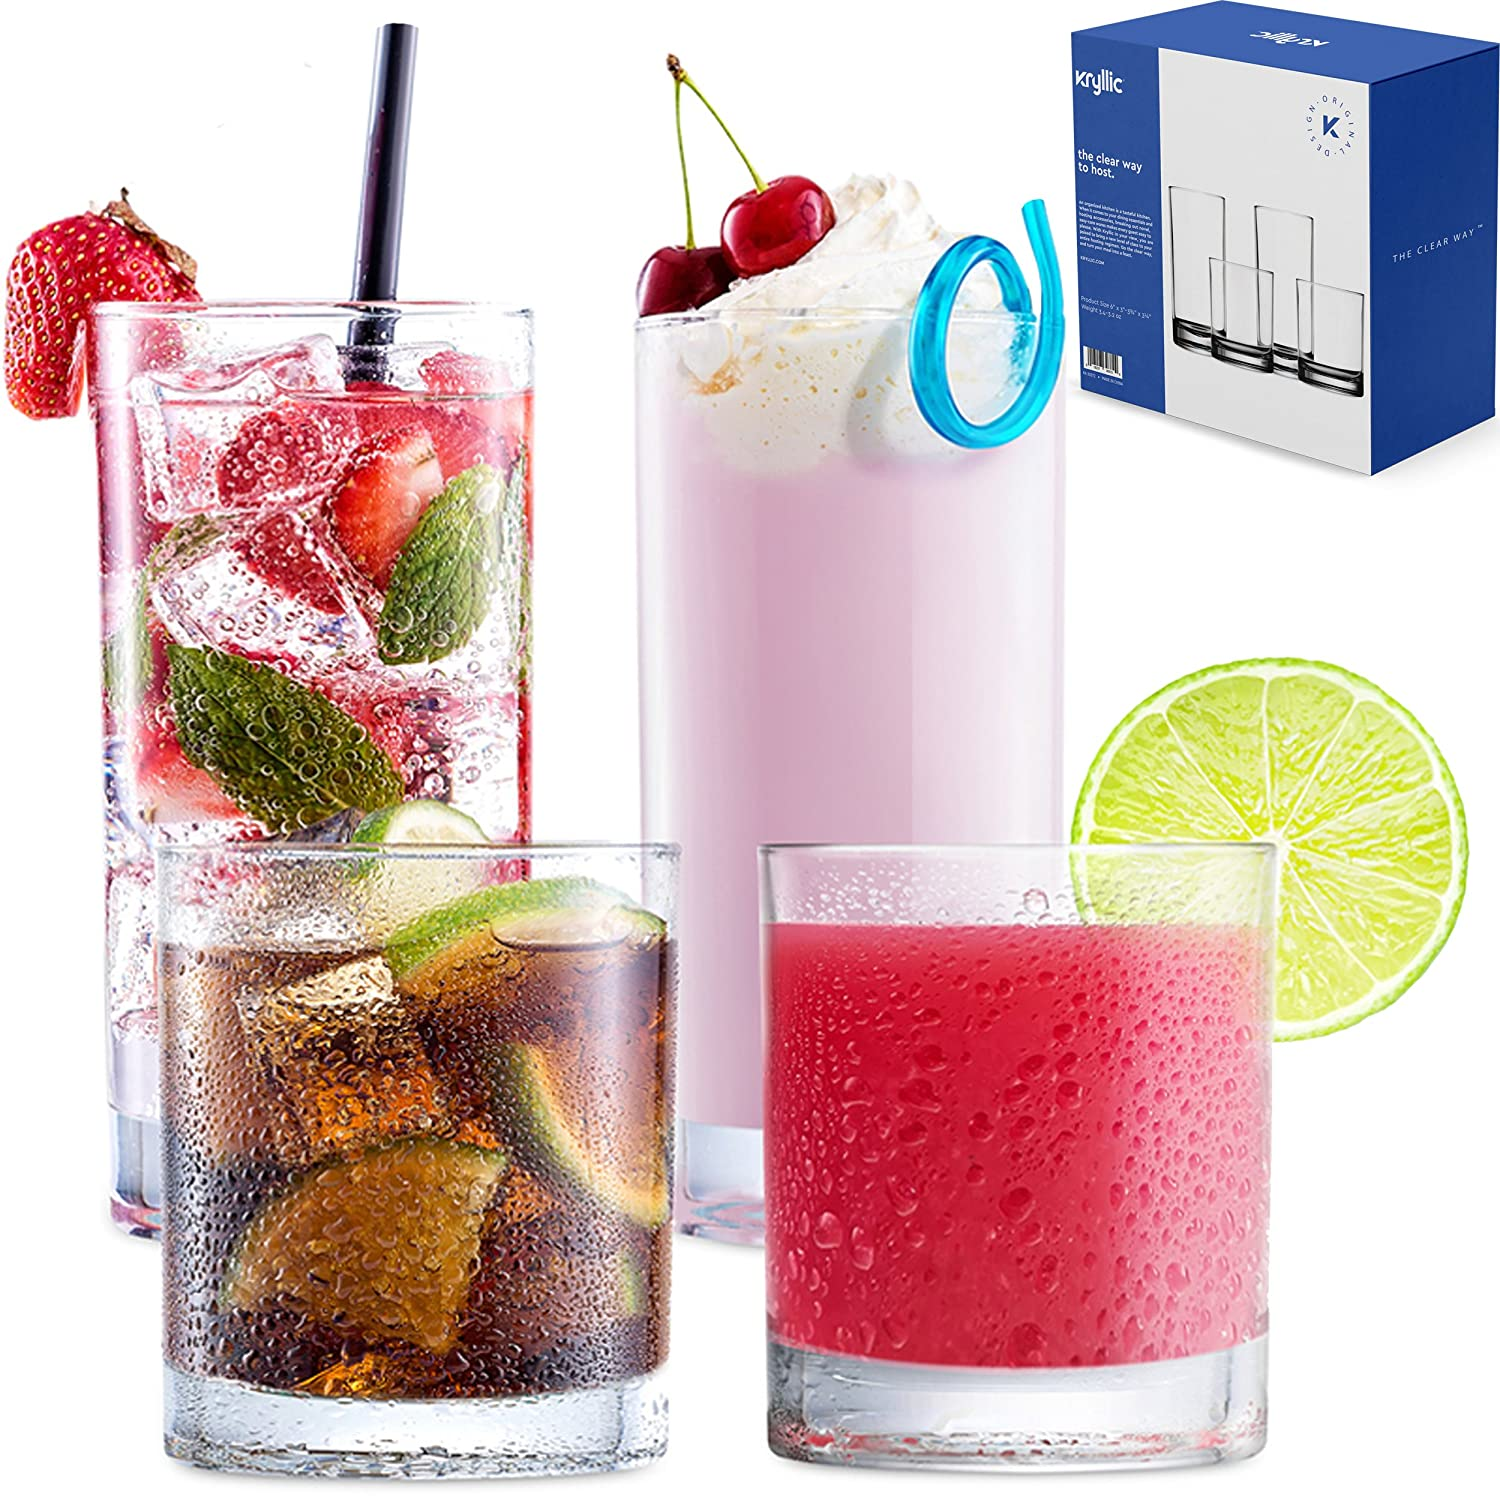 Plastic Tumbler Cups Drinking Glasses - Acrylic Highball Tumblers Set of 4 (2x16oz & 2x14oz) Clear Reusable Kitchen Drinkware Dishwasher Safe Bpa Free Hard Rocks Glass Drink Wine Water Juice Cup Sets